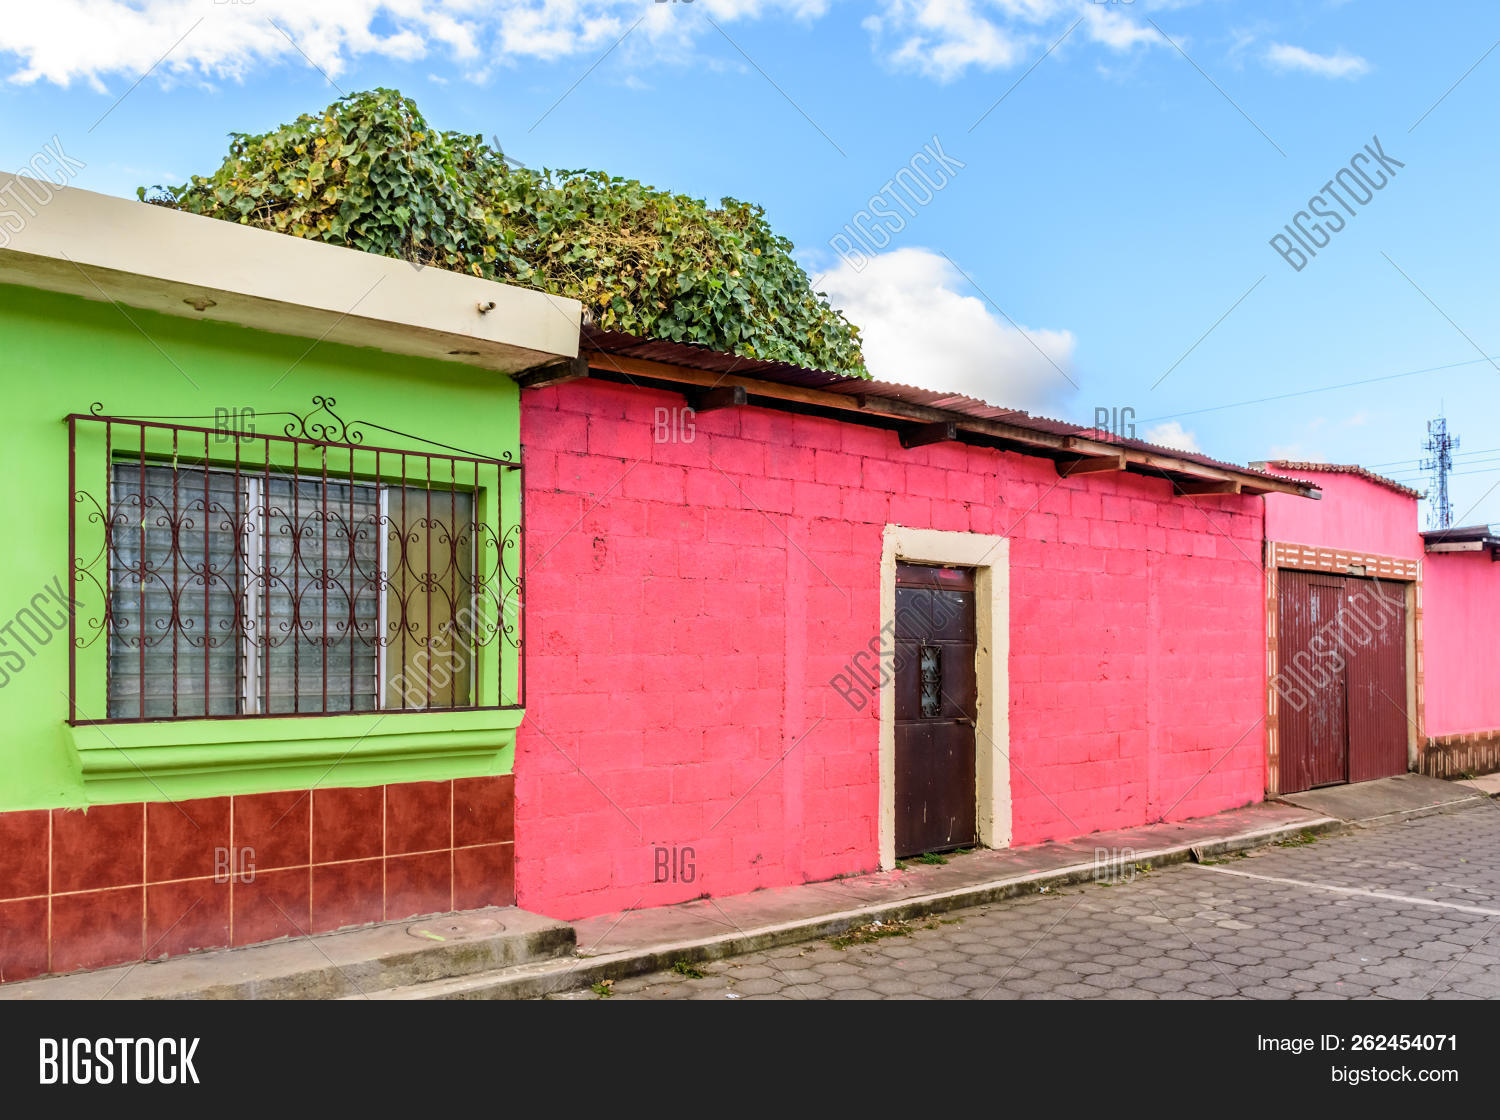 Street of colorfully painted houses in Guatemala, Central America